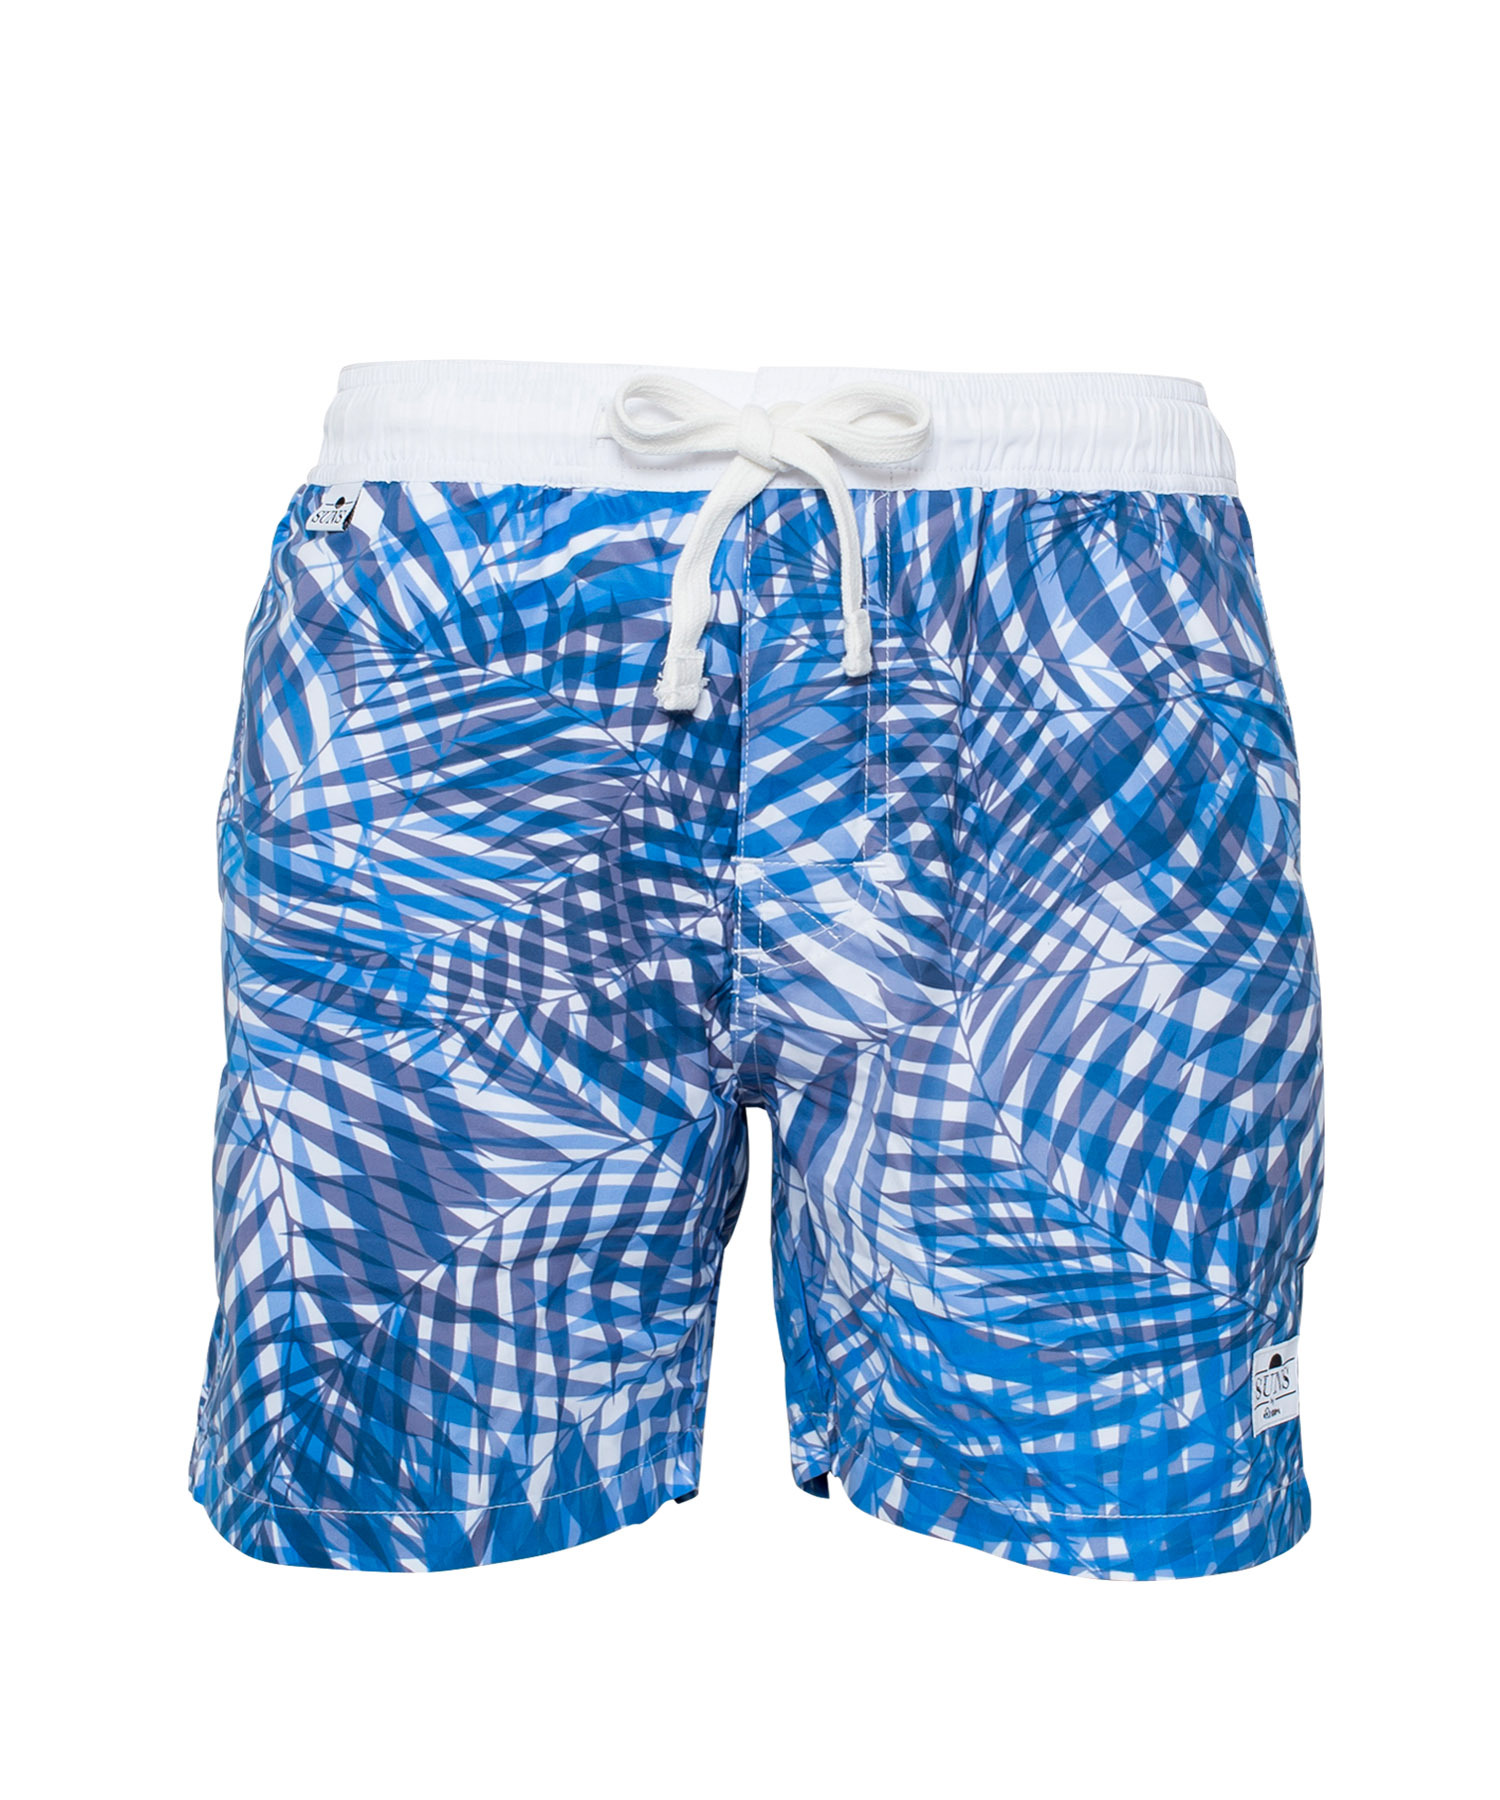 SUNS PARM TREE PATTERN PRINT SWIM SHORTS[RSW008]